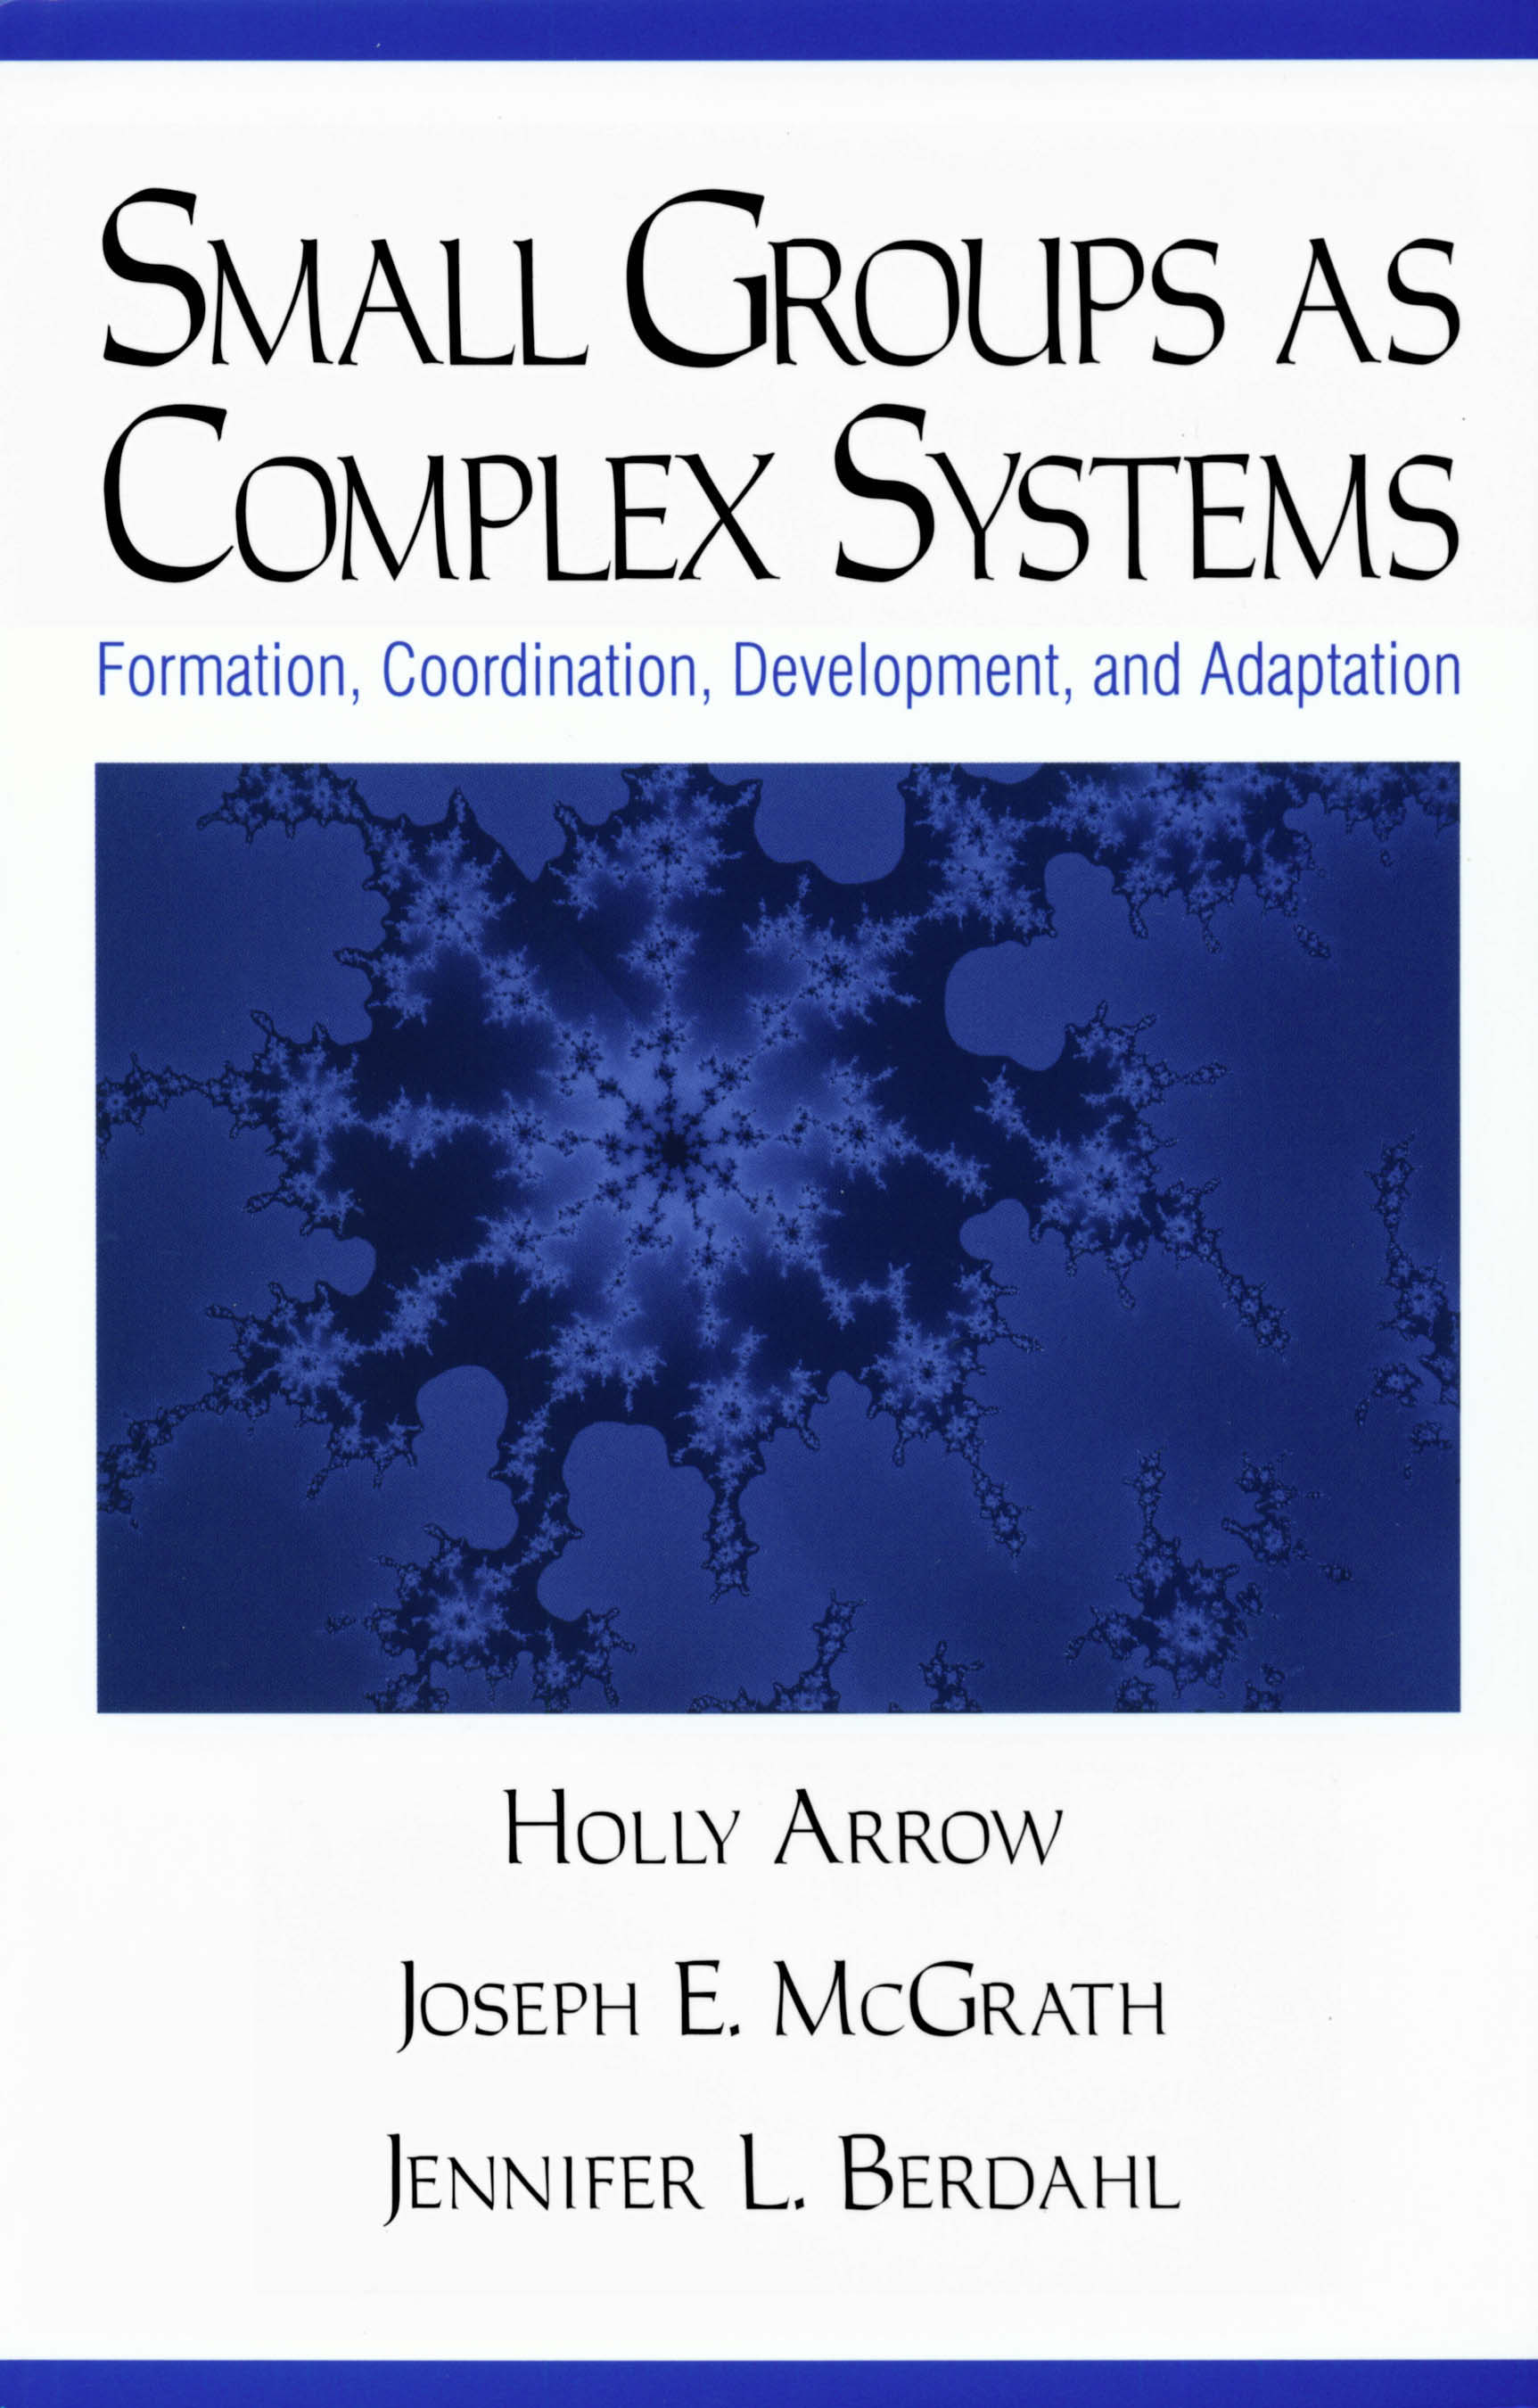 Download Ebook Small Groups as Complex Systems by Holly Arrow Pdf